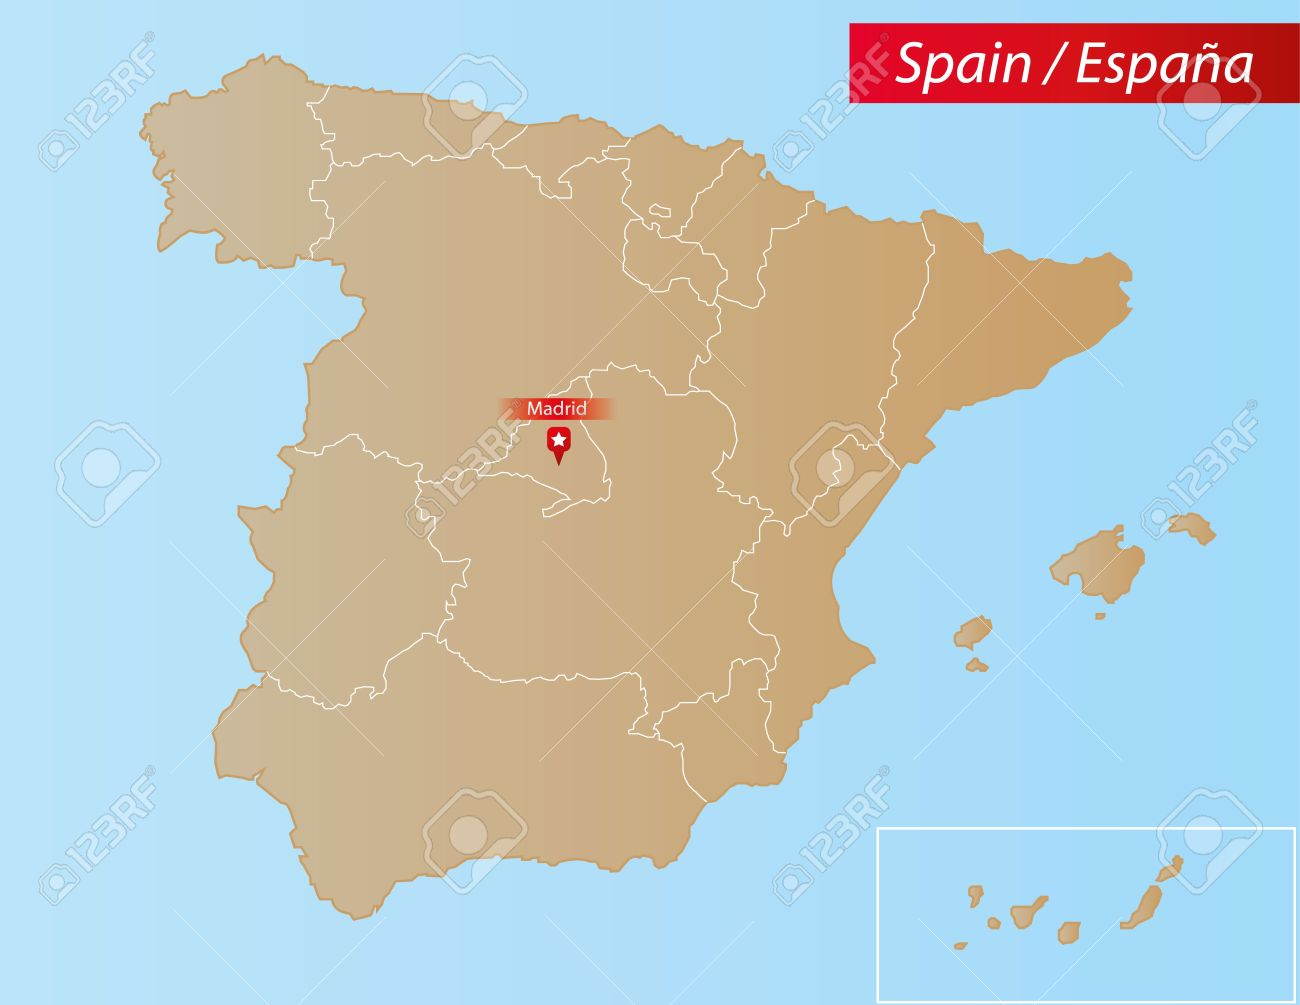 Map Of Spain And Surrounding Islands.Map Of Spain With Islands And Autonomous Communities